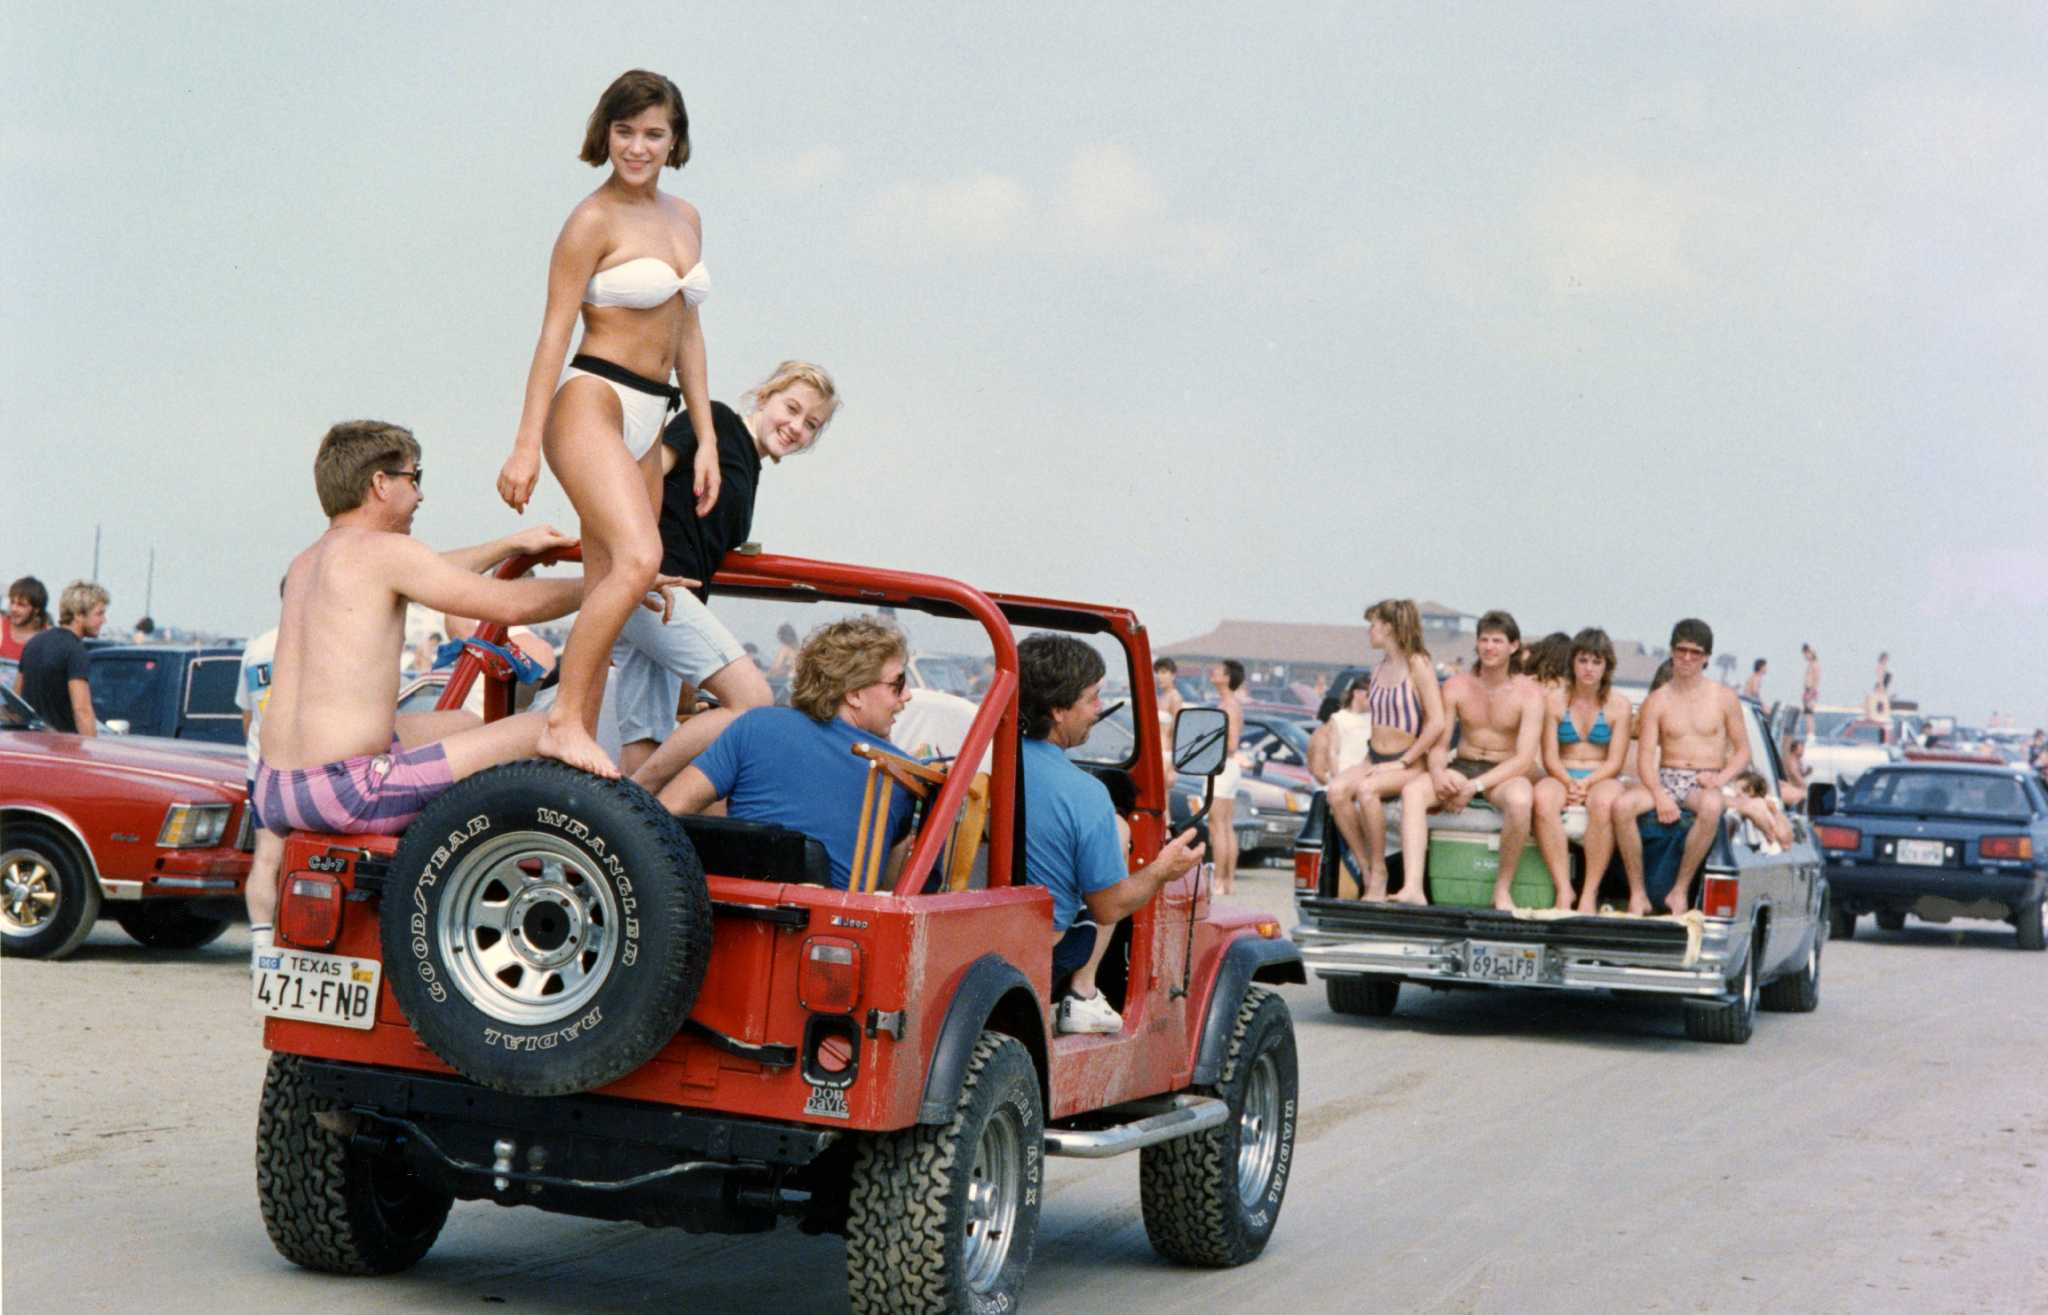 Spring Break Galveston In The 80s And 90s San Antonio